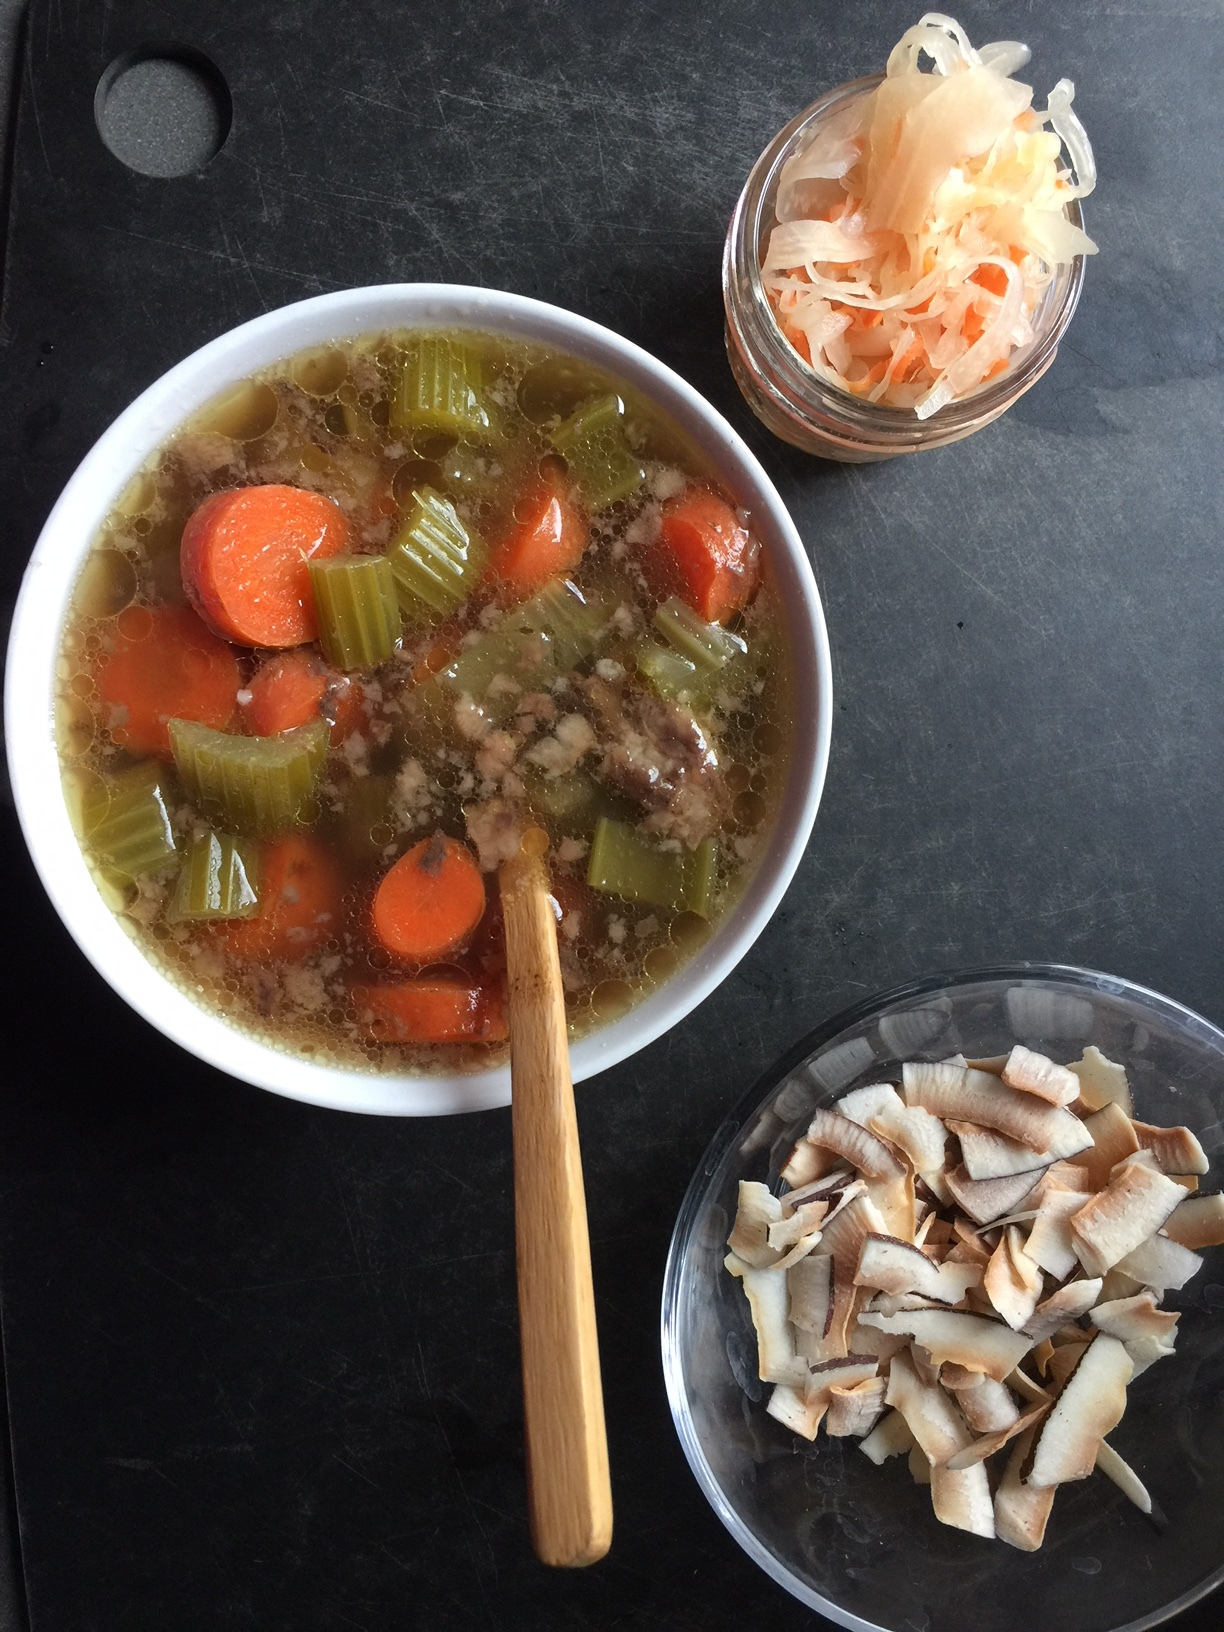 Day 2: Broth soup, ginger-carrot sauerkraut, and toasted coconut.